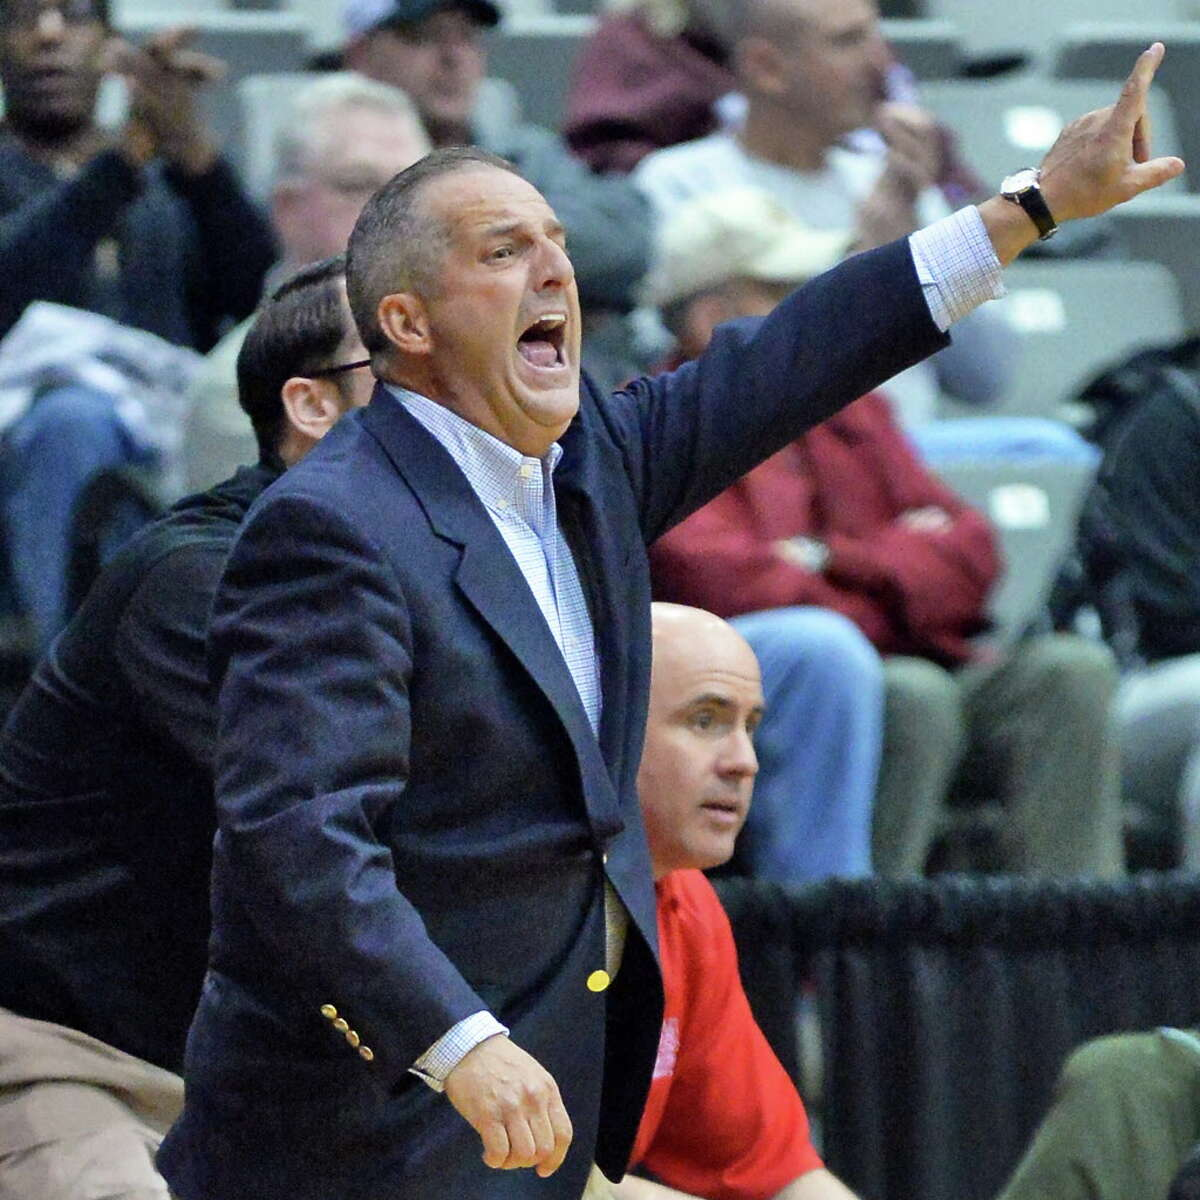 Albany Academy head coach Brian Fruscio calls out to players during their Class A Federation Tournament Semifinal against Springfield Gardens at SEFCU Arena Friday March 27, 2015 in Albany, NY. (John Carl D'Annibale / Times Union)